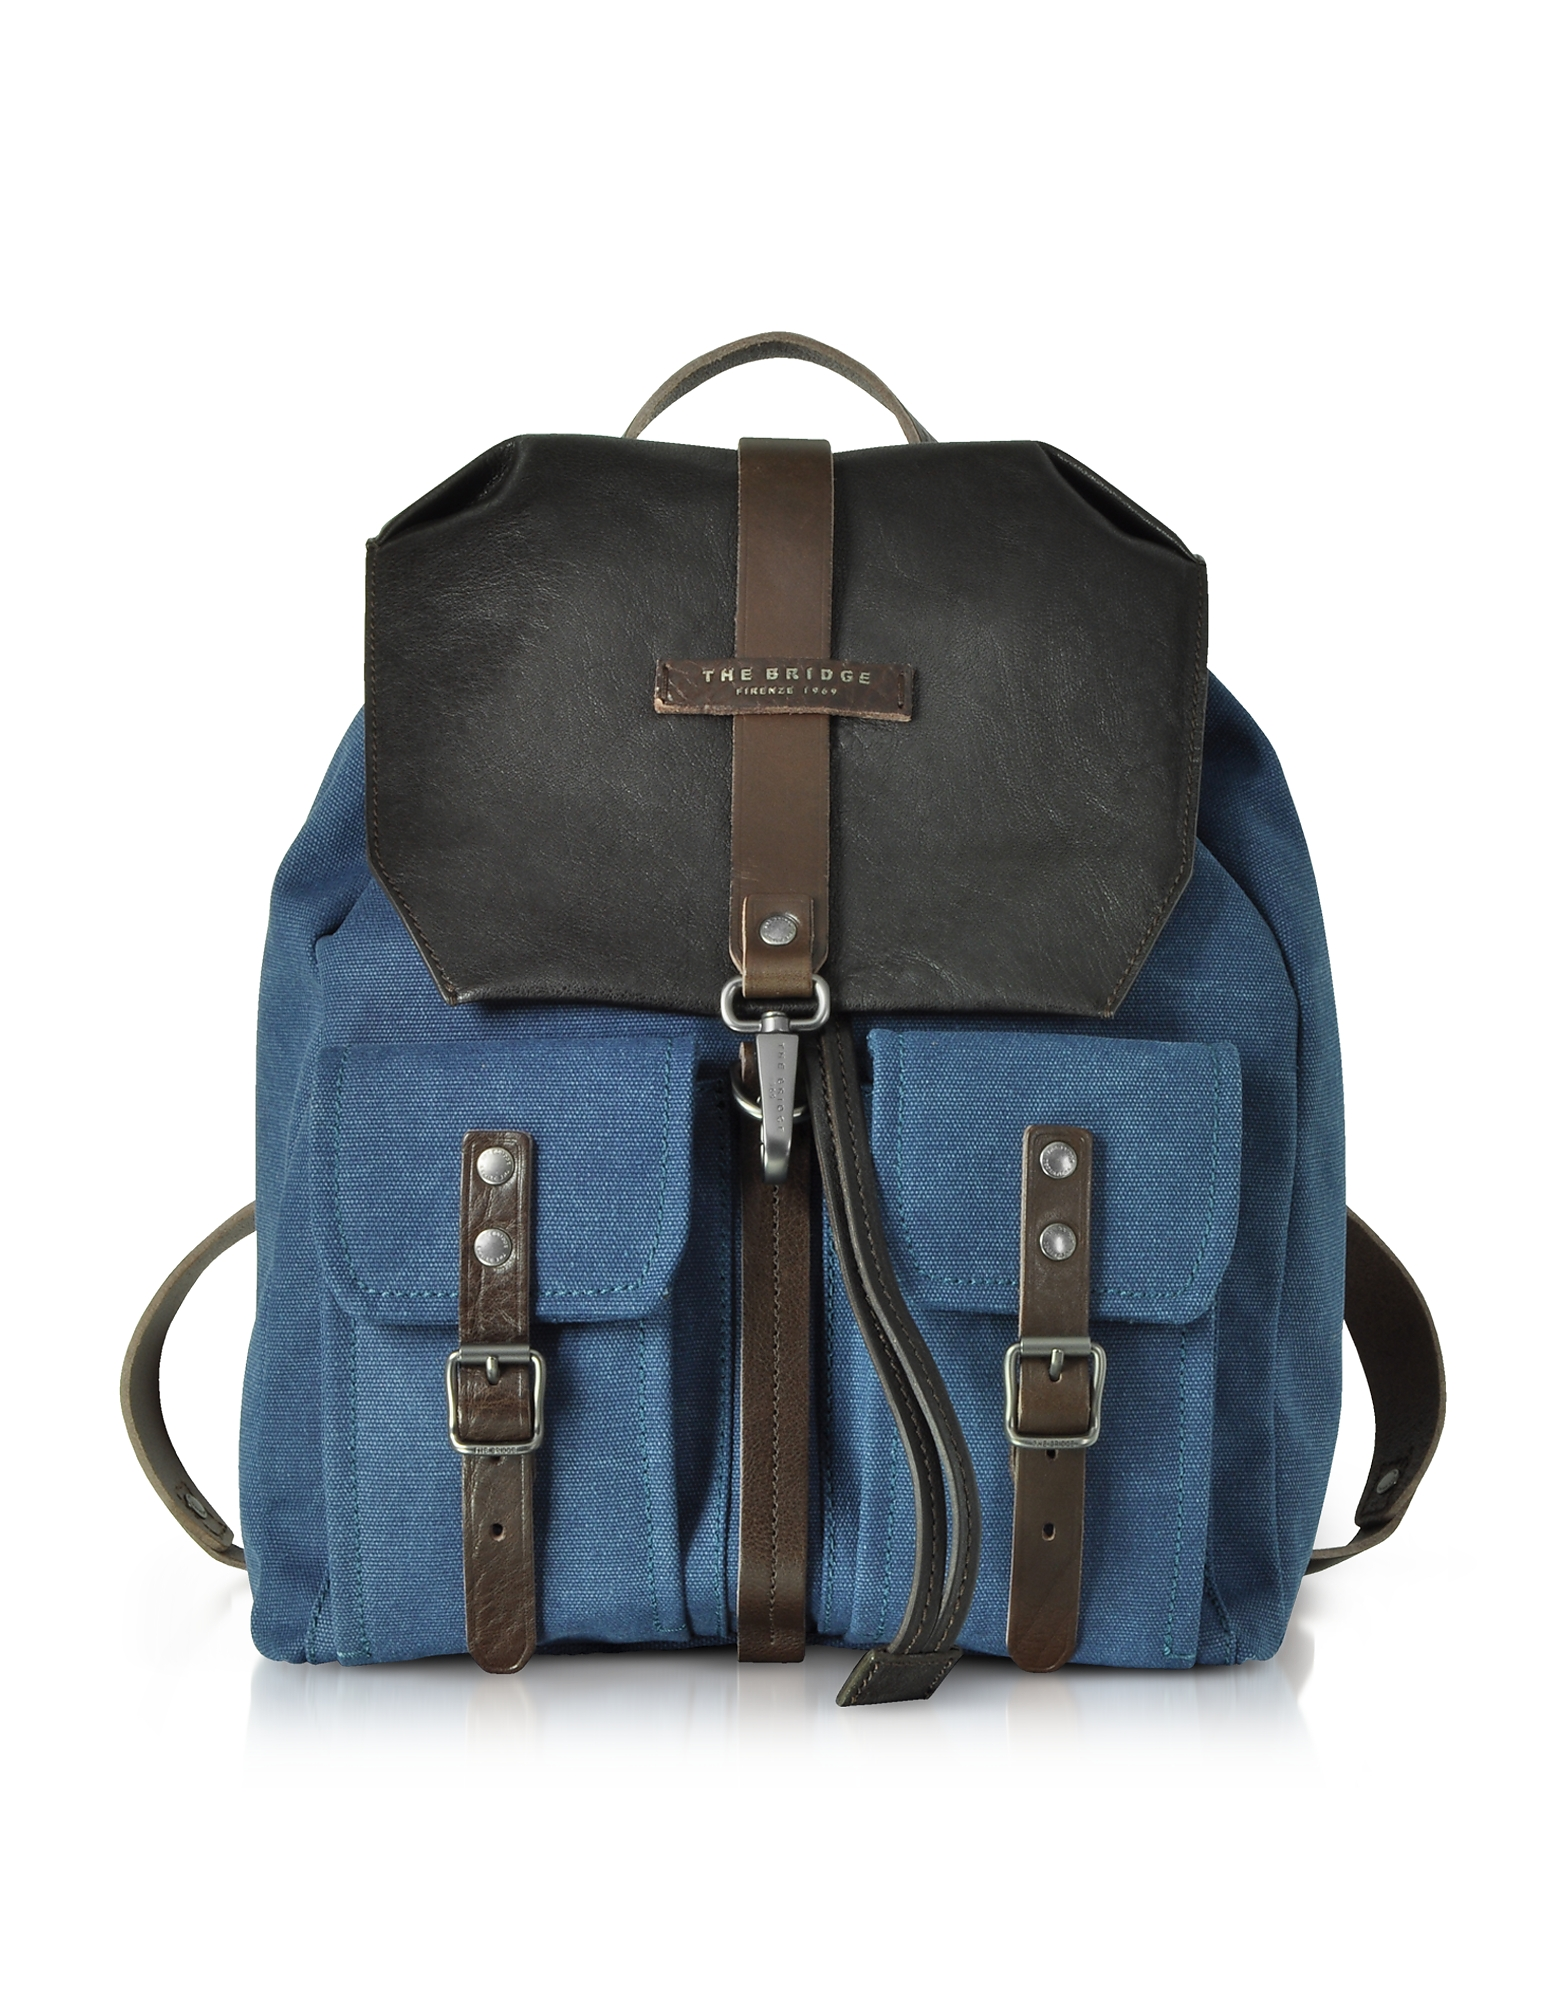 Image of The Bridge Designer Backpacks, Carver-D Canvas and Leather Men's Backpack w/Flap Top